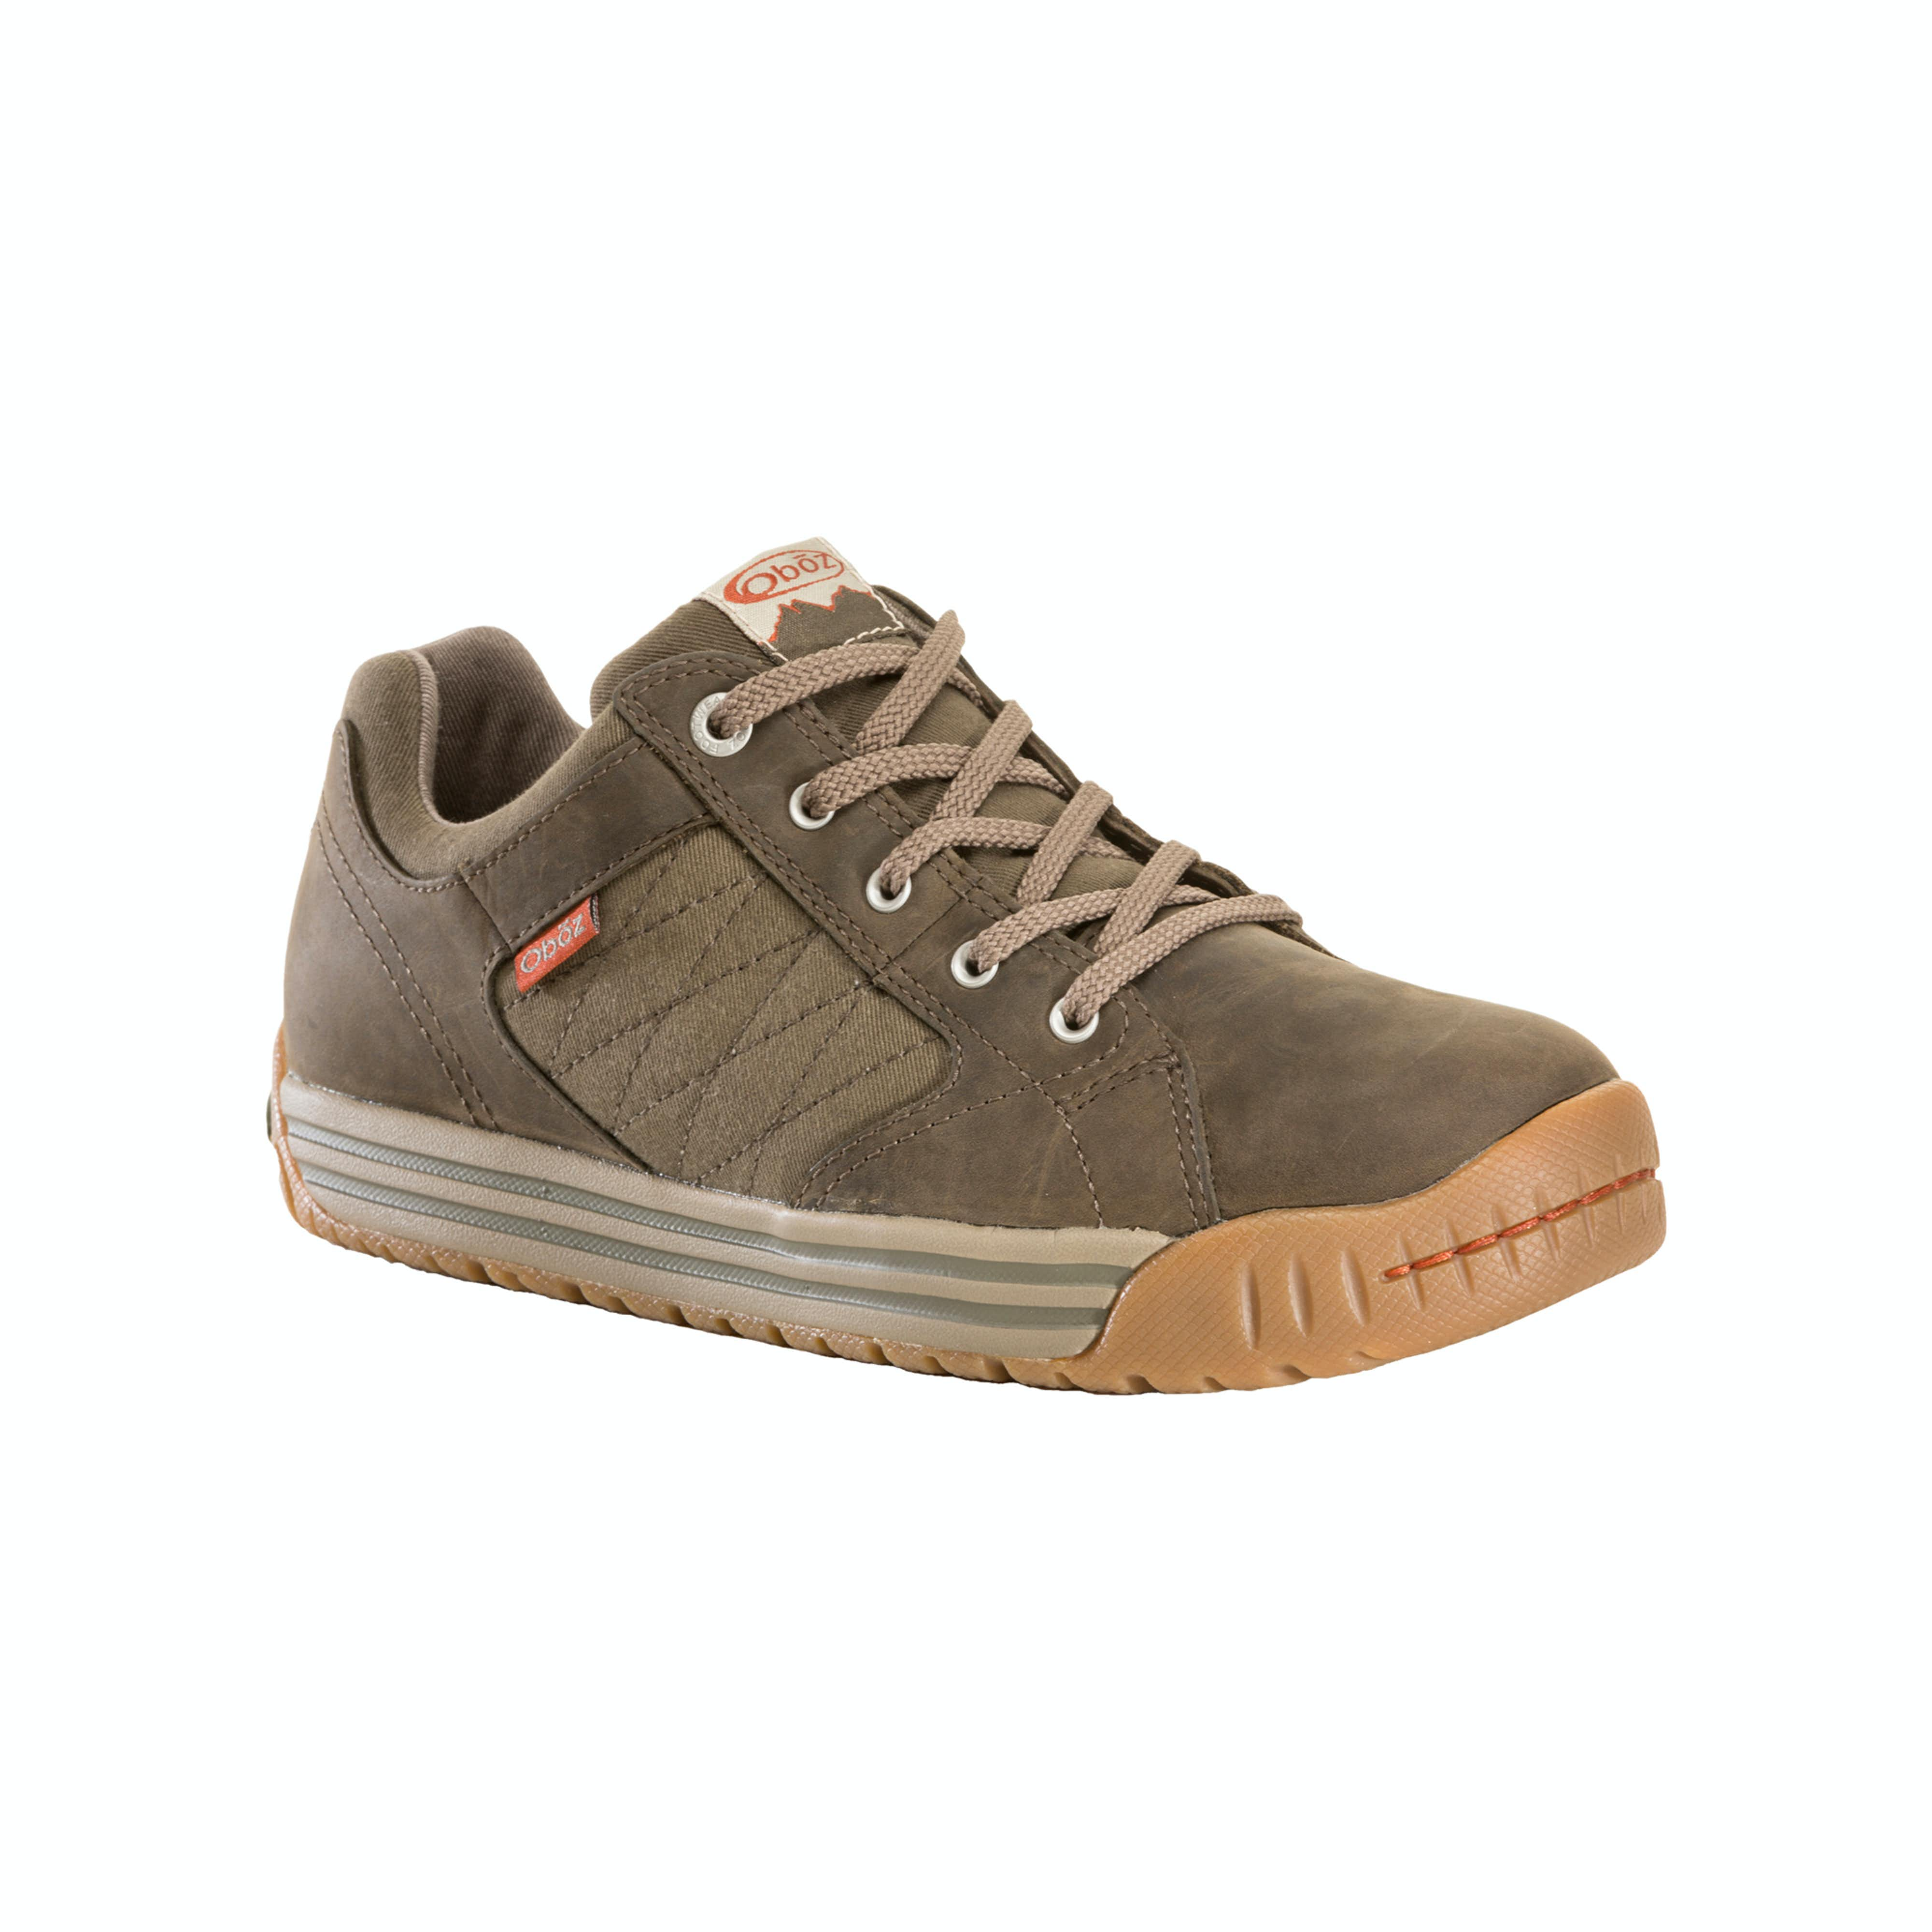 41f57609169 OBOZ Mendenhall Low Men s Lifestyle Shoes OBOZ Mendenhall Low Men s  Lifestyle Shoes